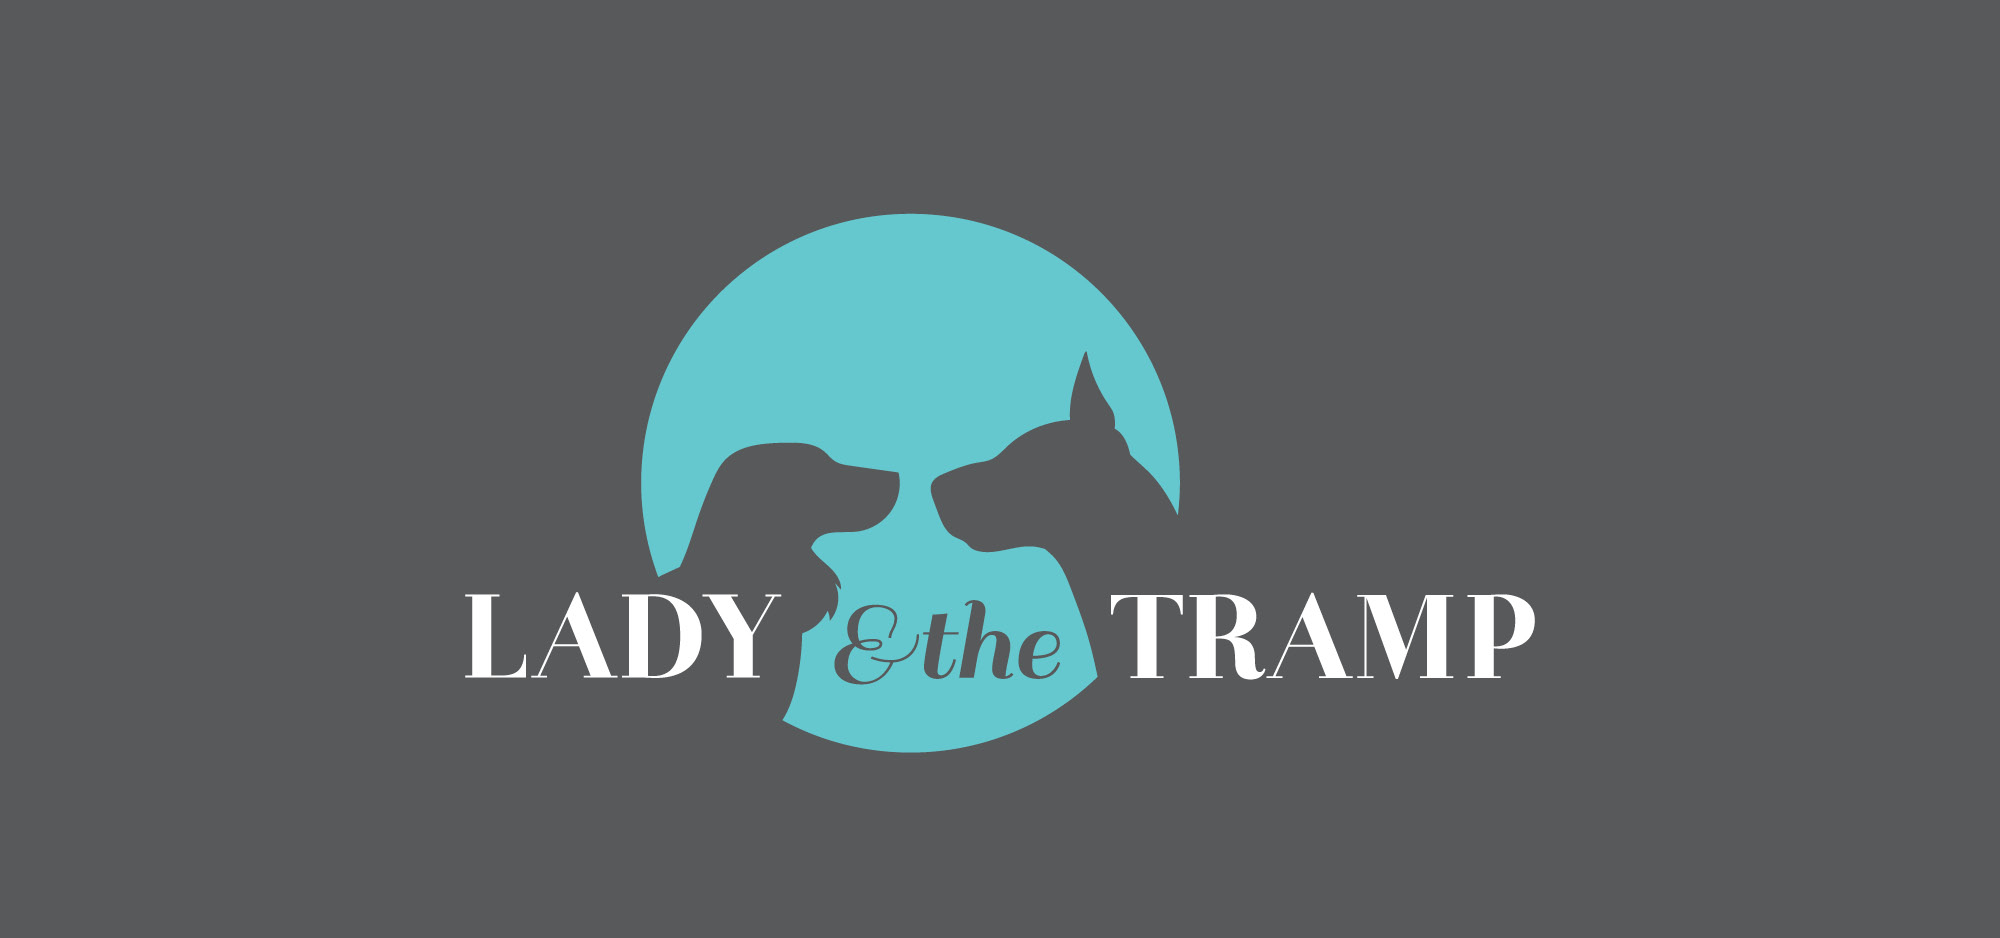 Lady & the Tramp silhouette logo design